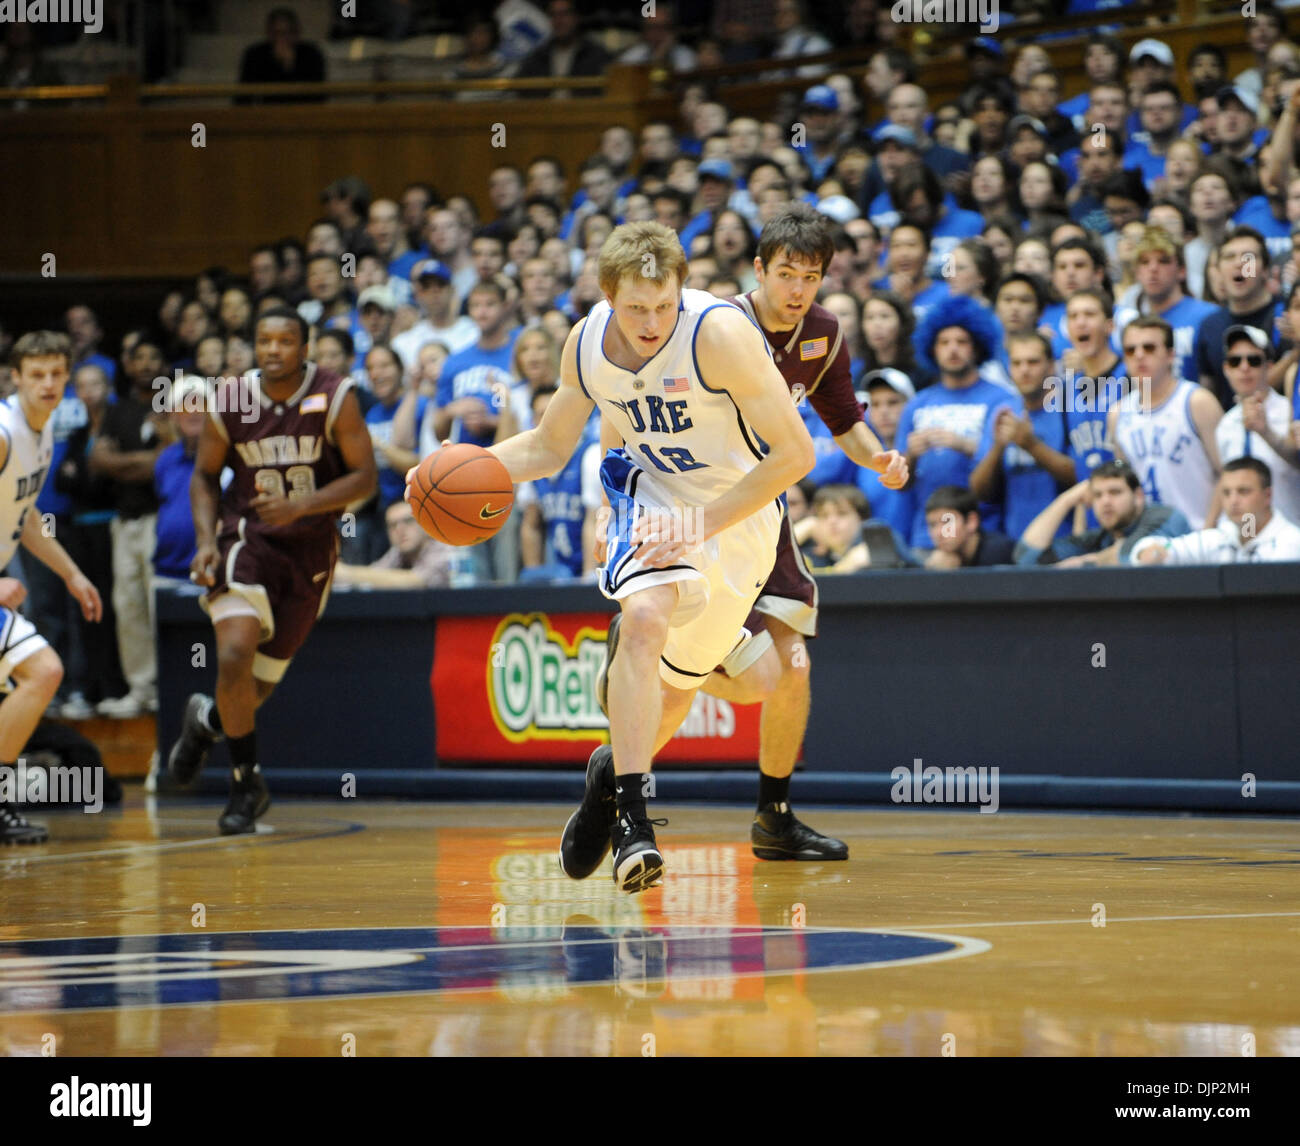 Nov 23, 2008 - Durham, North Carolina, USA - NCAA Basketball: Duke Bluedevils (12) KYLE SINGLER drives to the basket as the Duke University Bluedevils defeat the University of Montana Grizzlies with a final score of 78-58 as they played mens college basketball at Cameron Indoor Stadium located in Durham.  (Credit Image: © Jason Moore/ZUMA Press) - Stock Image